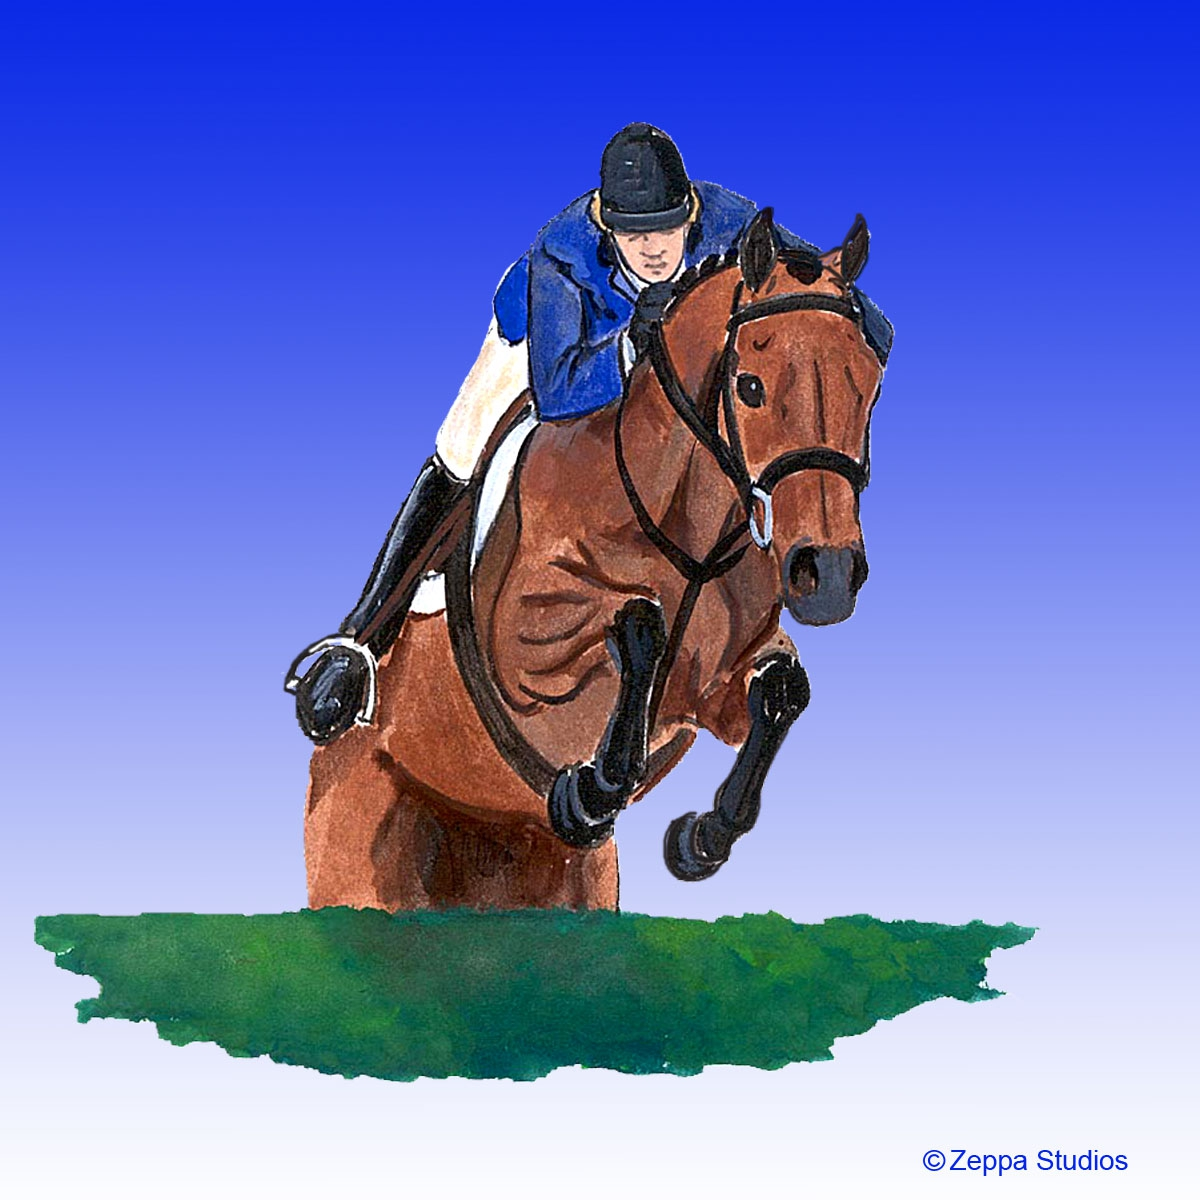 Equestrian Sports Gifts